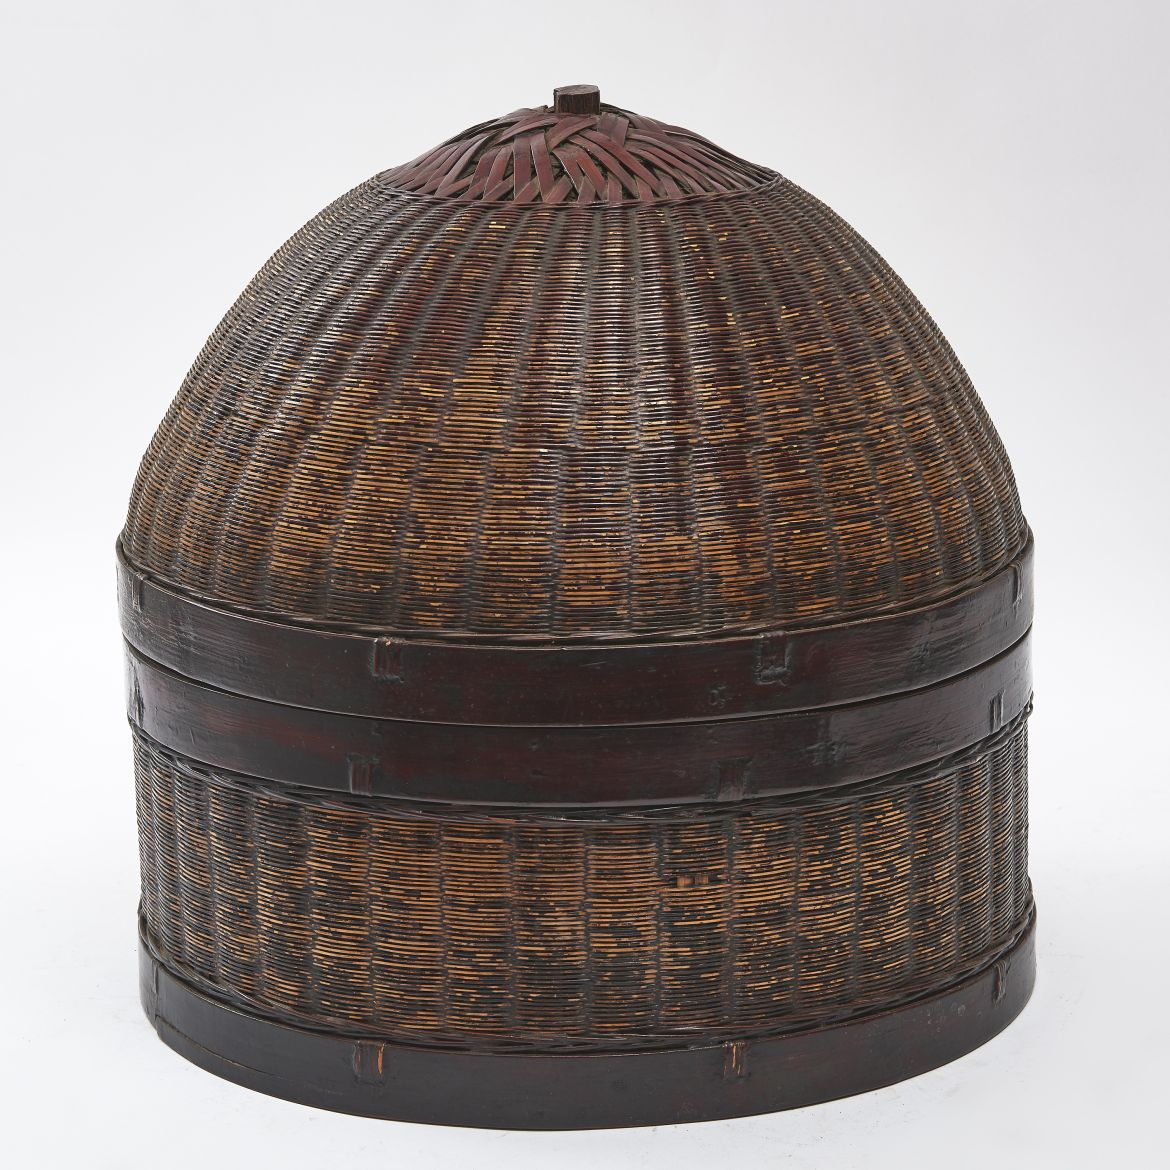 Chinese Wicker And Wood Basket